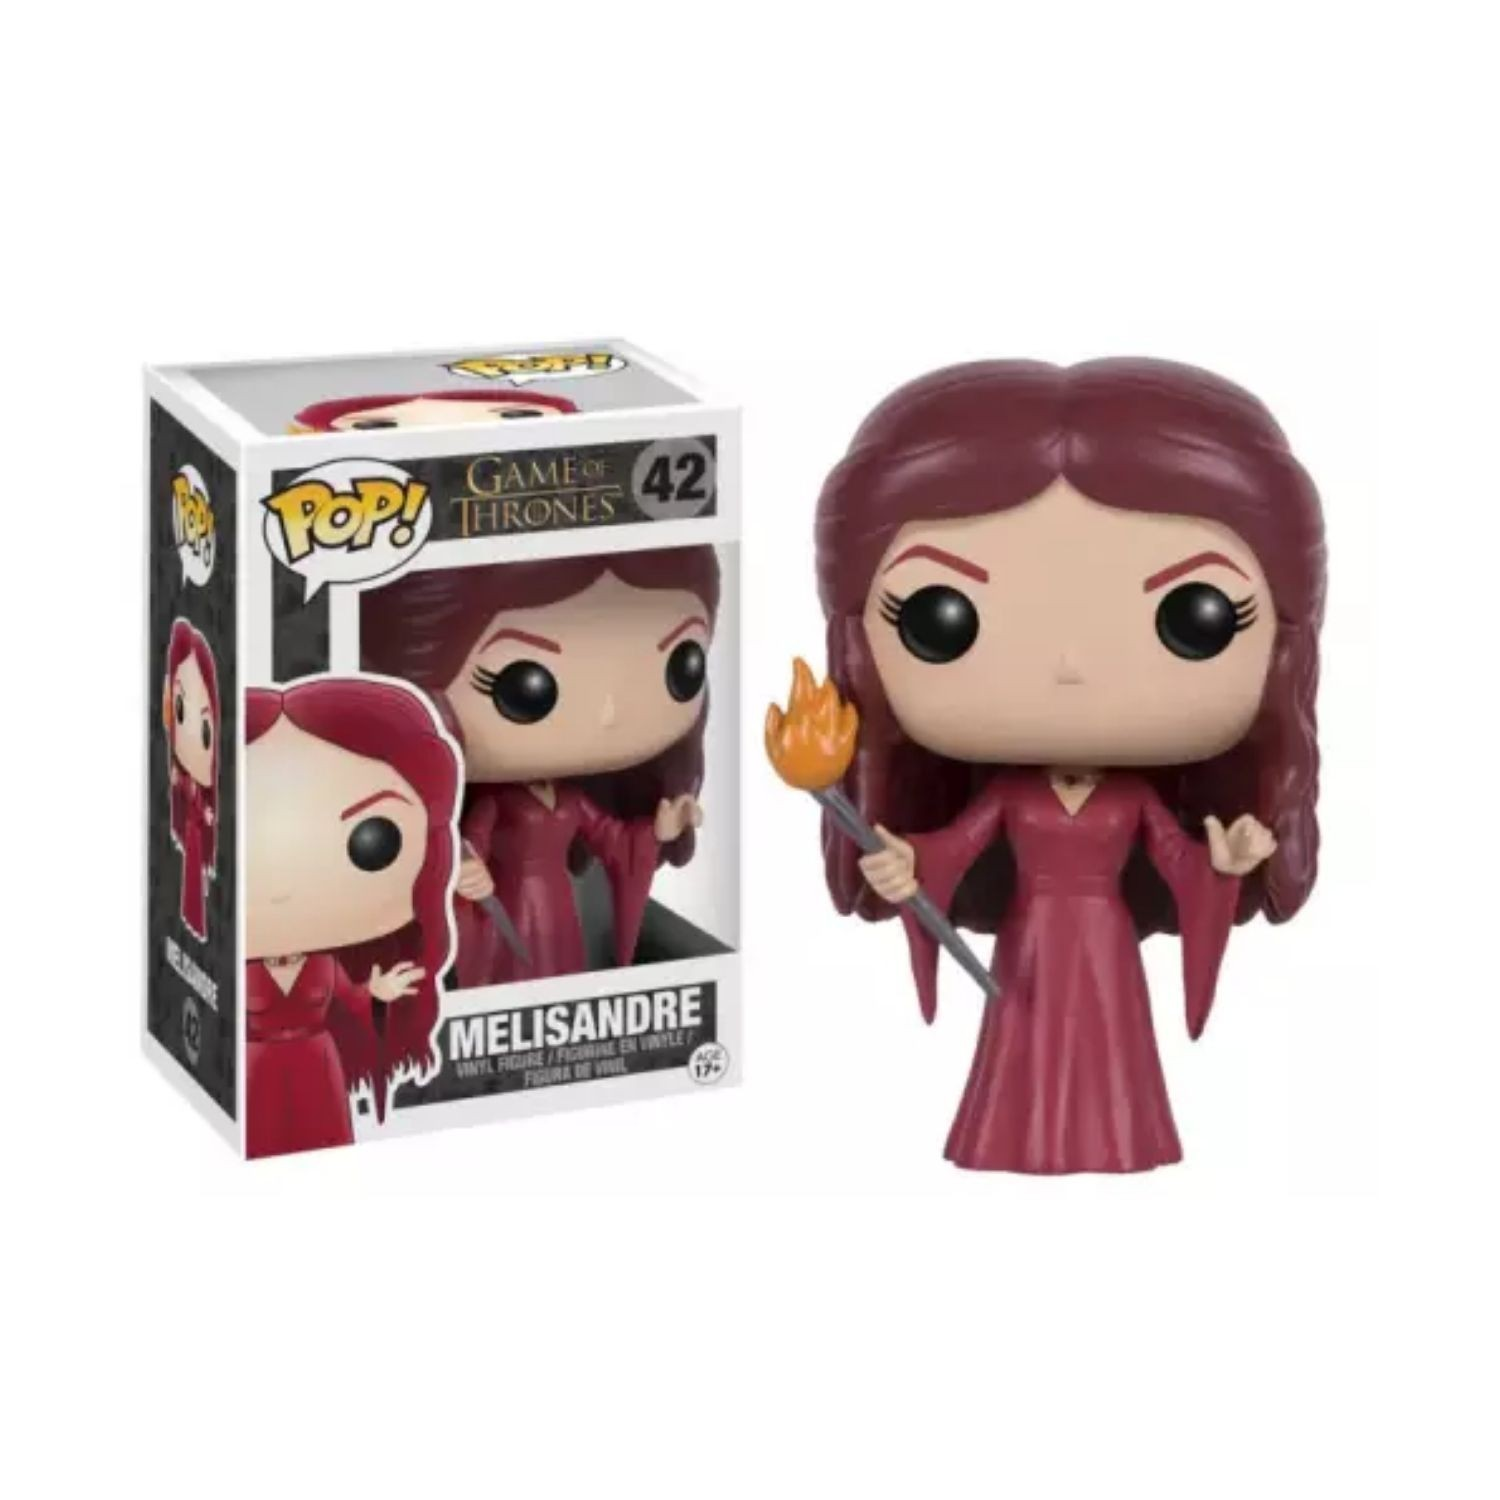 Funko Pop Melisandre Game of Thrones #42 Vaulted  - Game Land Brinquedos